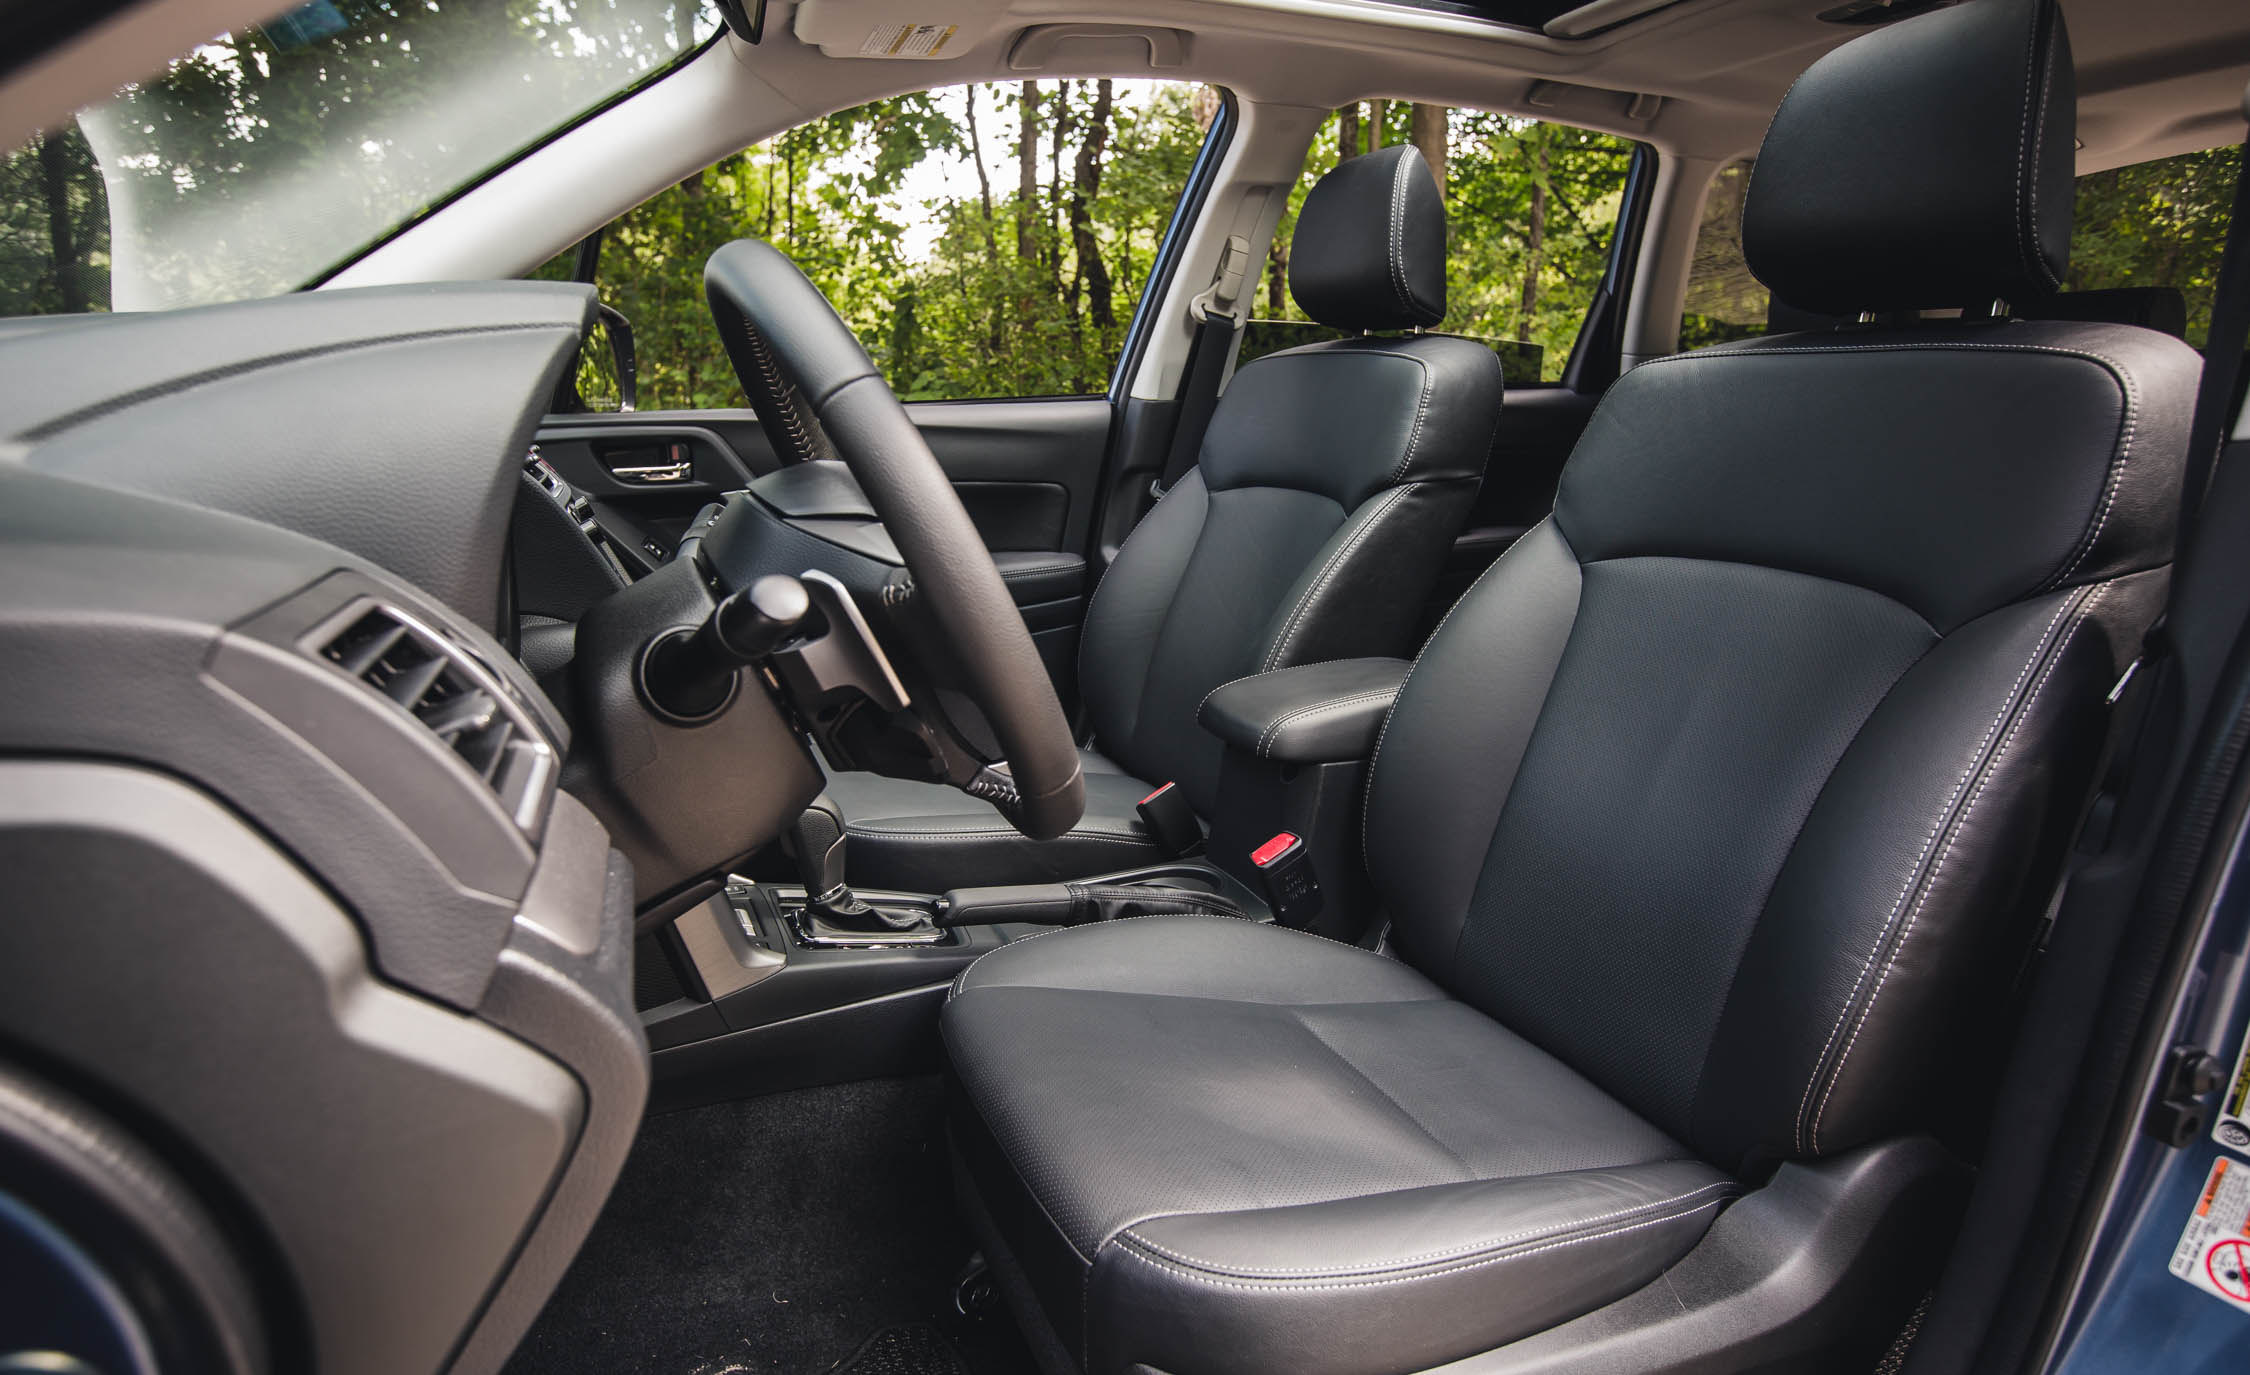 2016 Subaru Forester 2.0XT Touring Interior Seats Cockpit